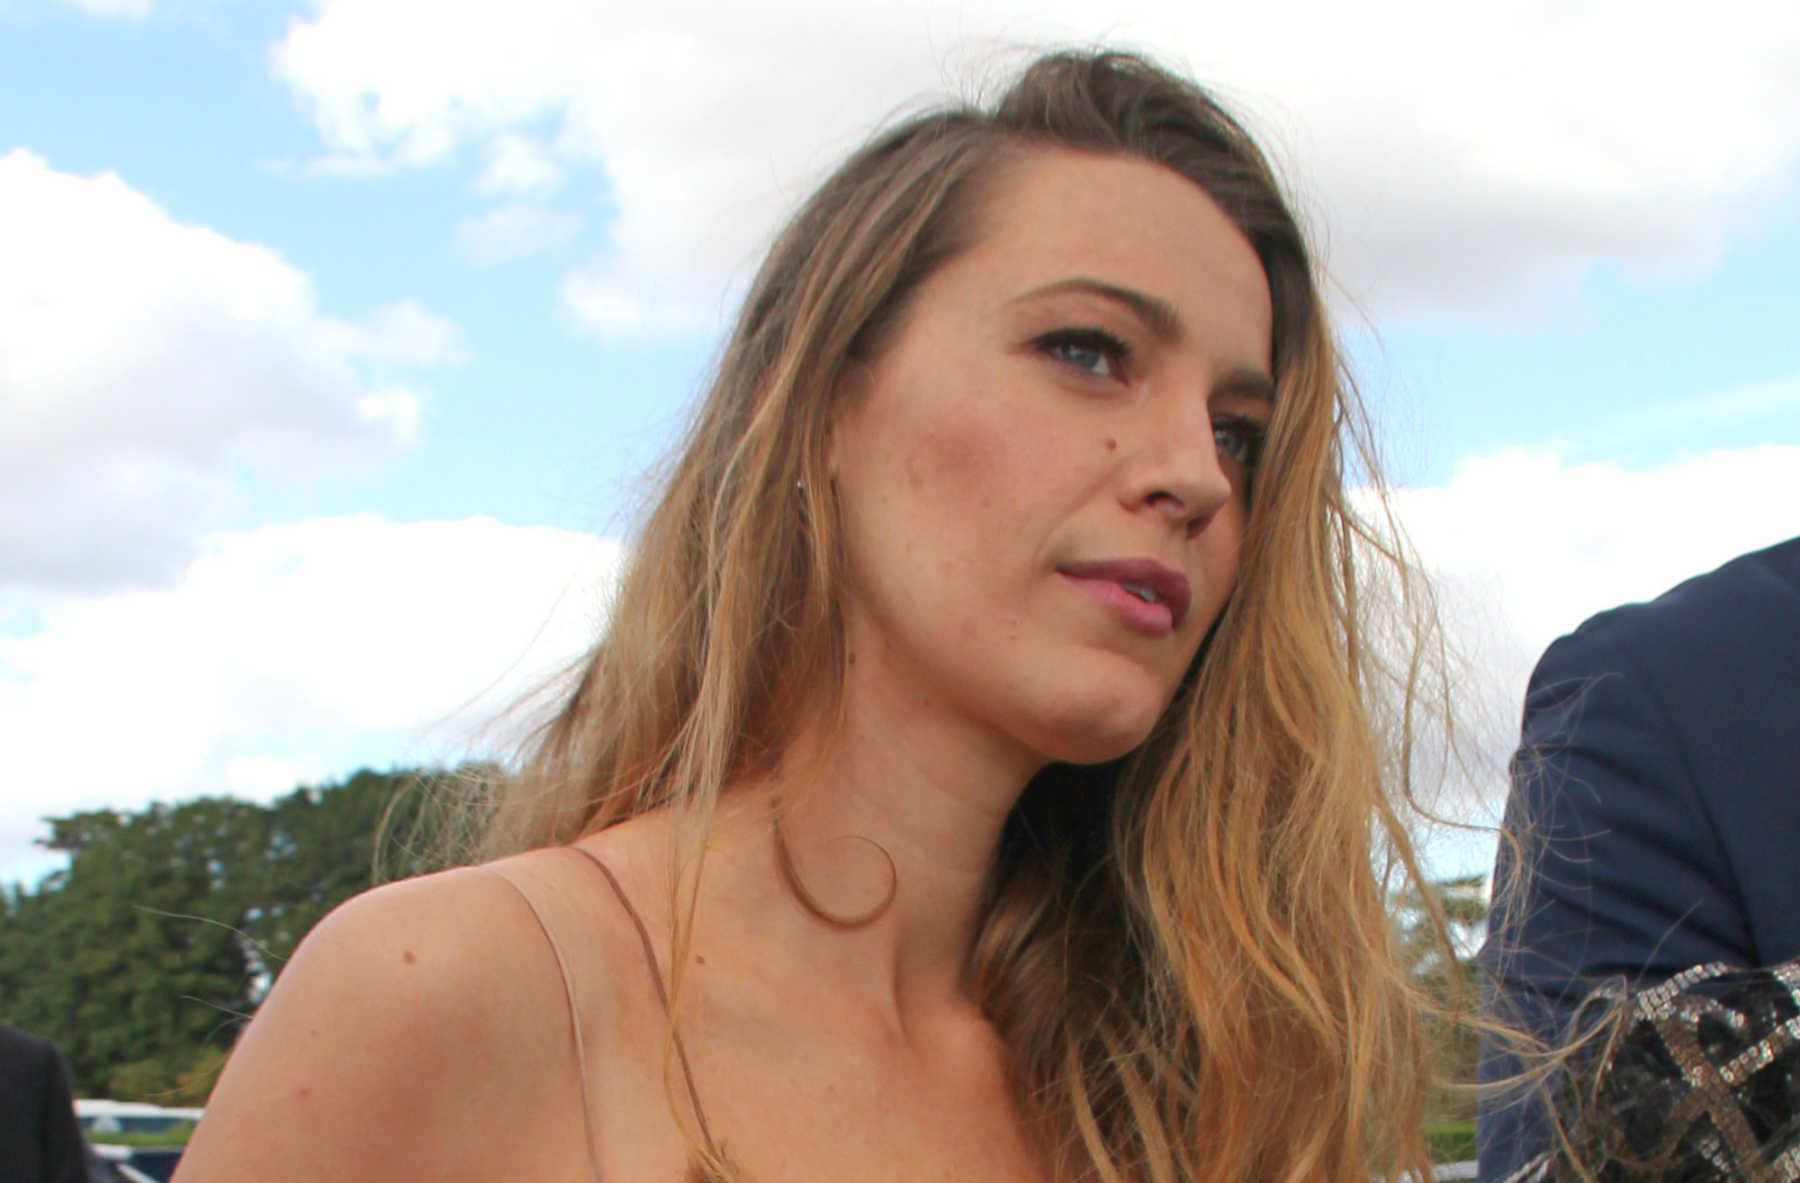 Naked photos of Blake Lively - The Girl Fappening Leaked